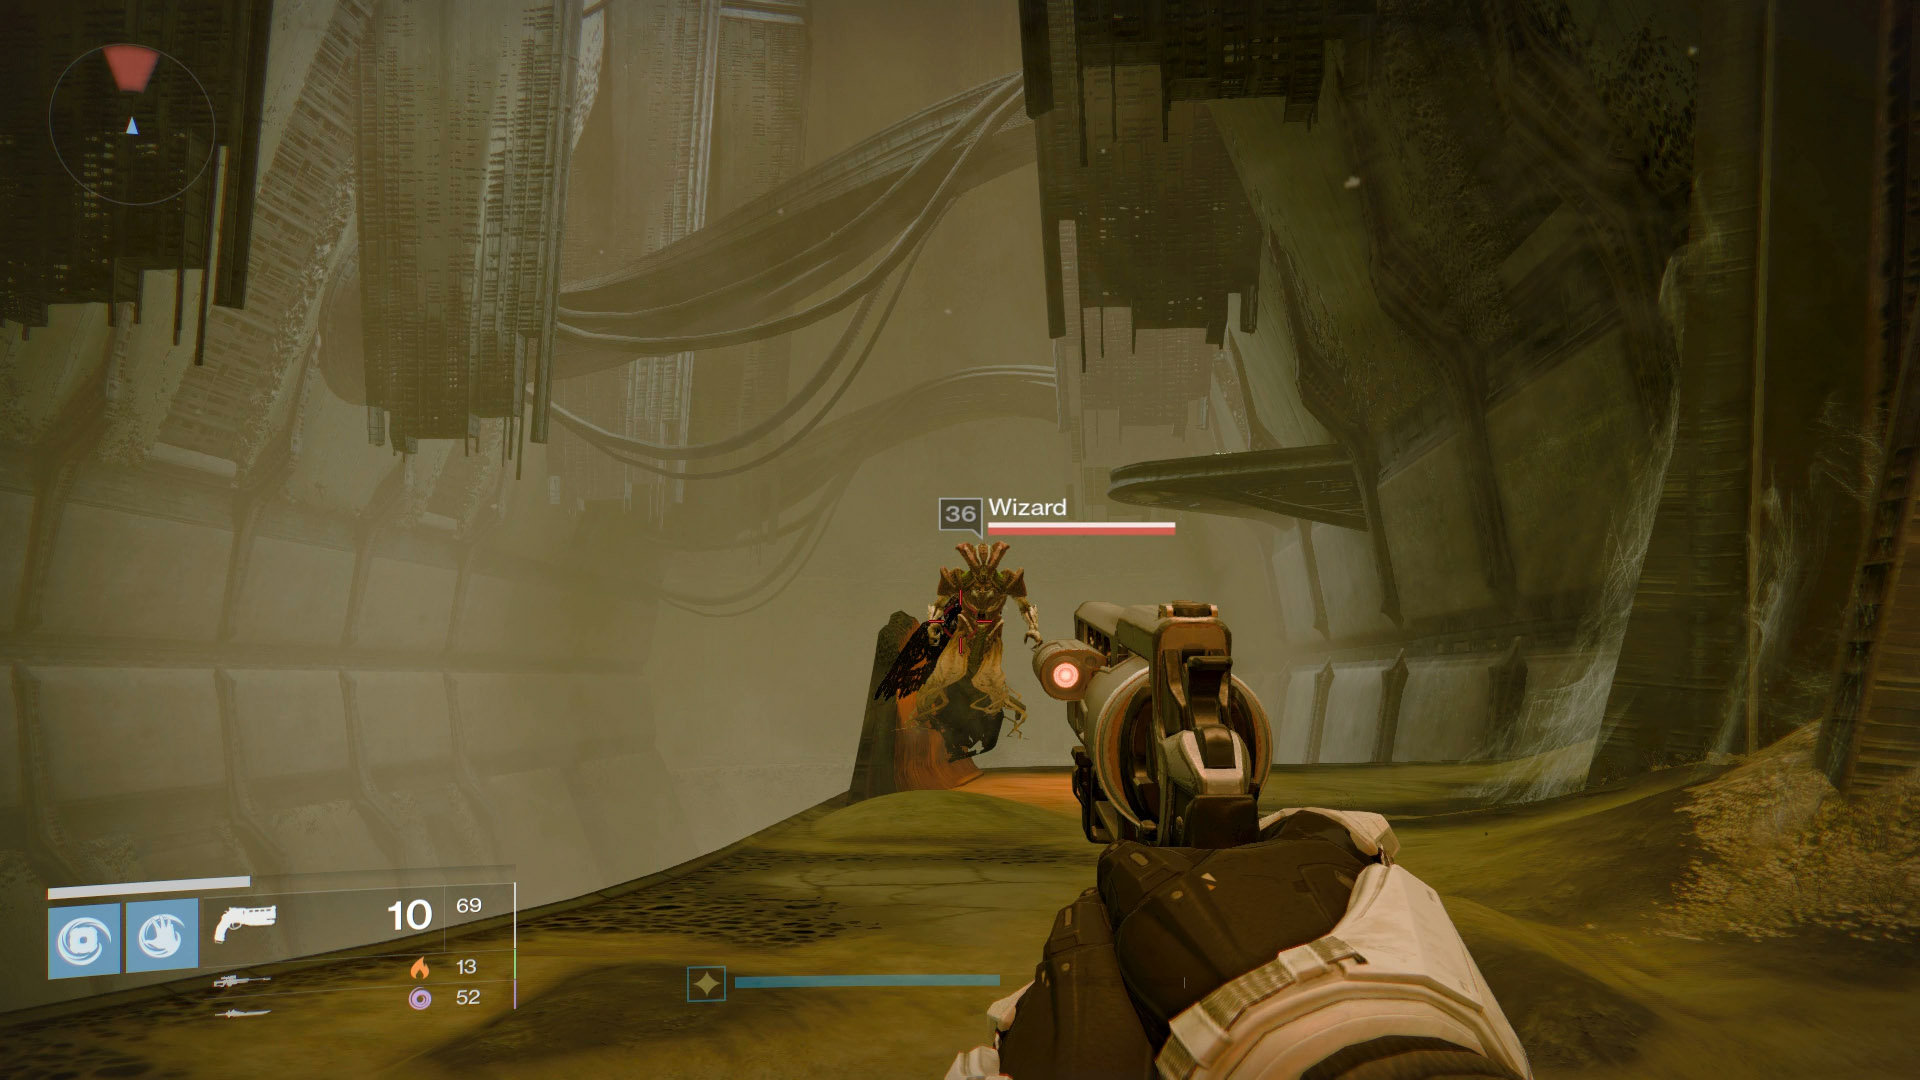 You can farm Wizards around the Court of Oryx while Patrolling the Dreadnaught.